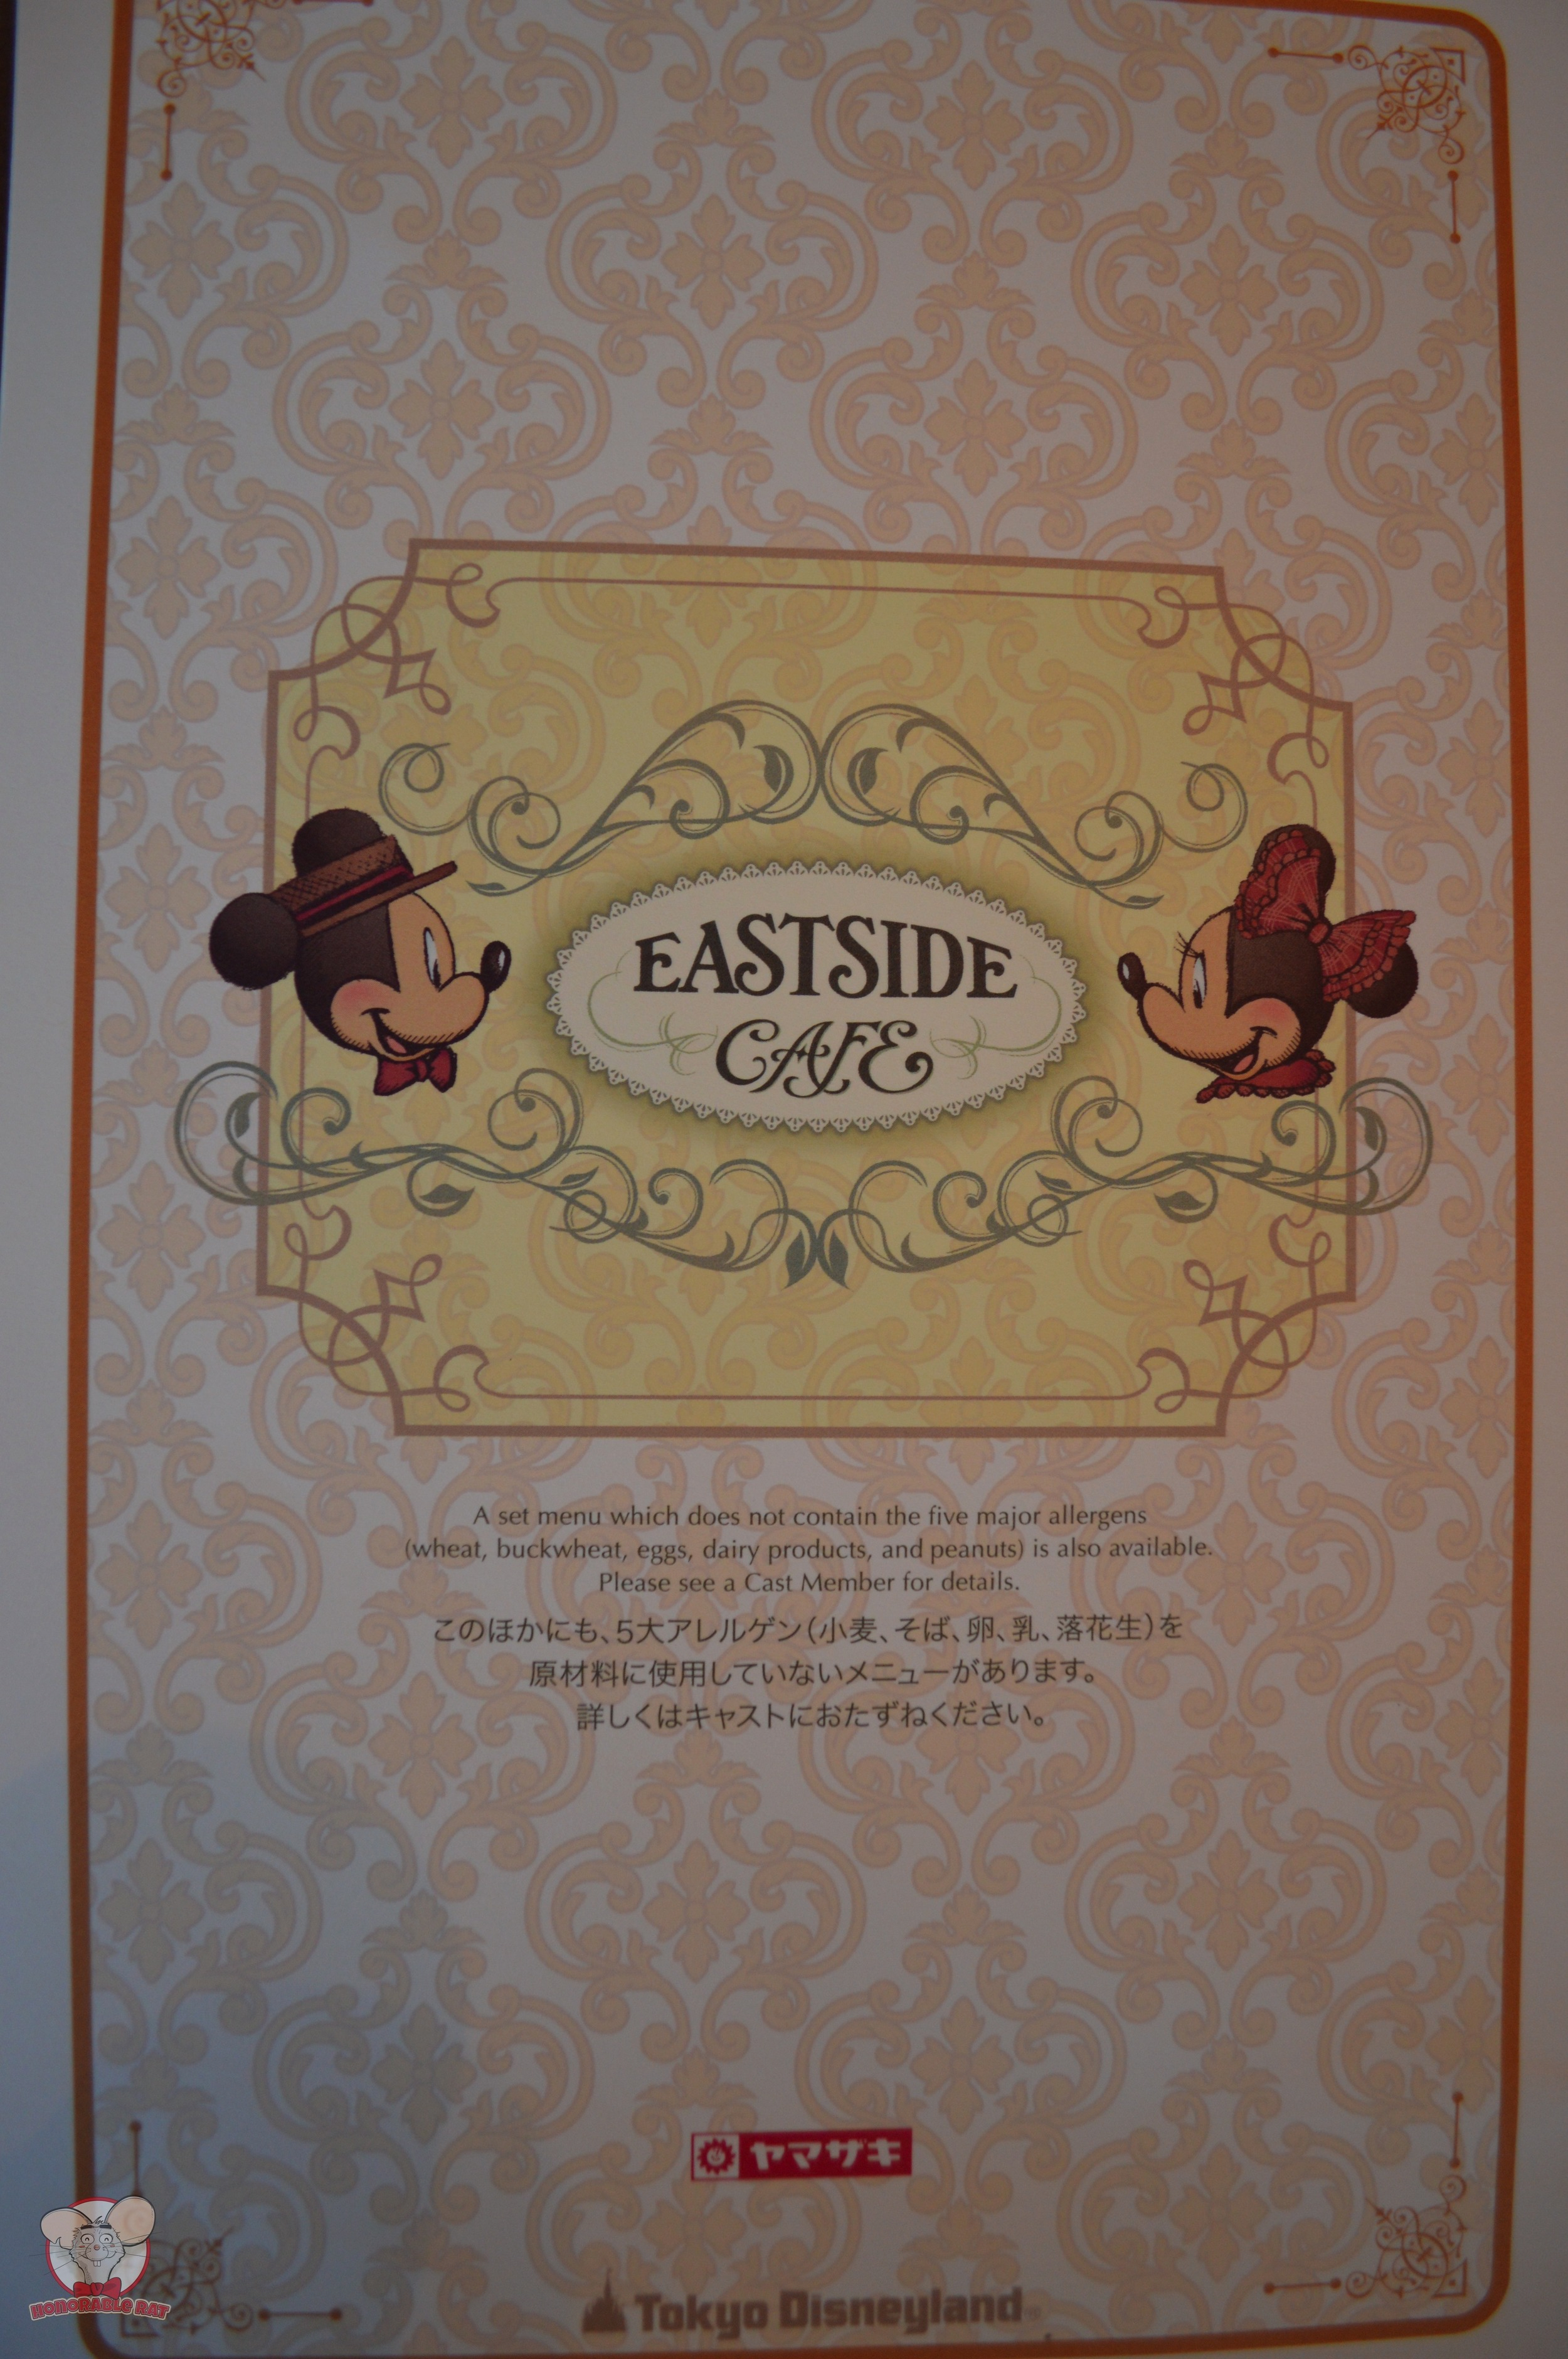 Eastside Cafe Kid's Menu Cover